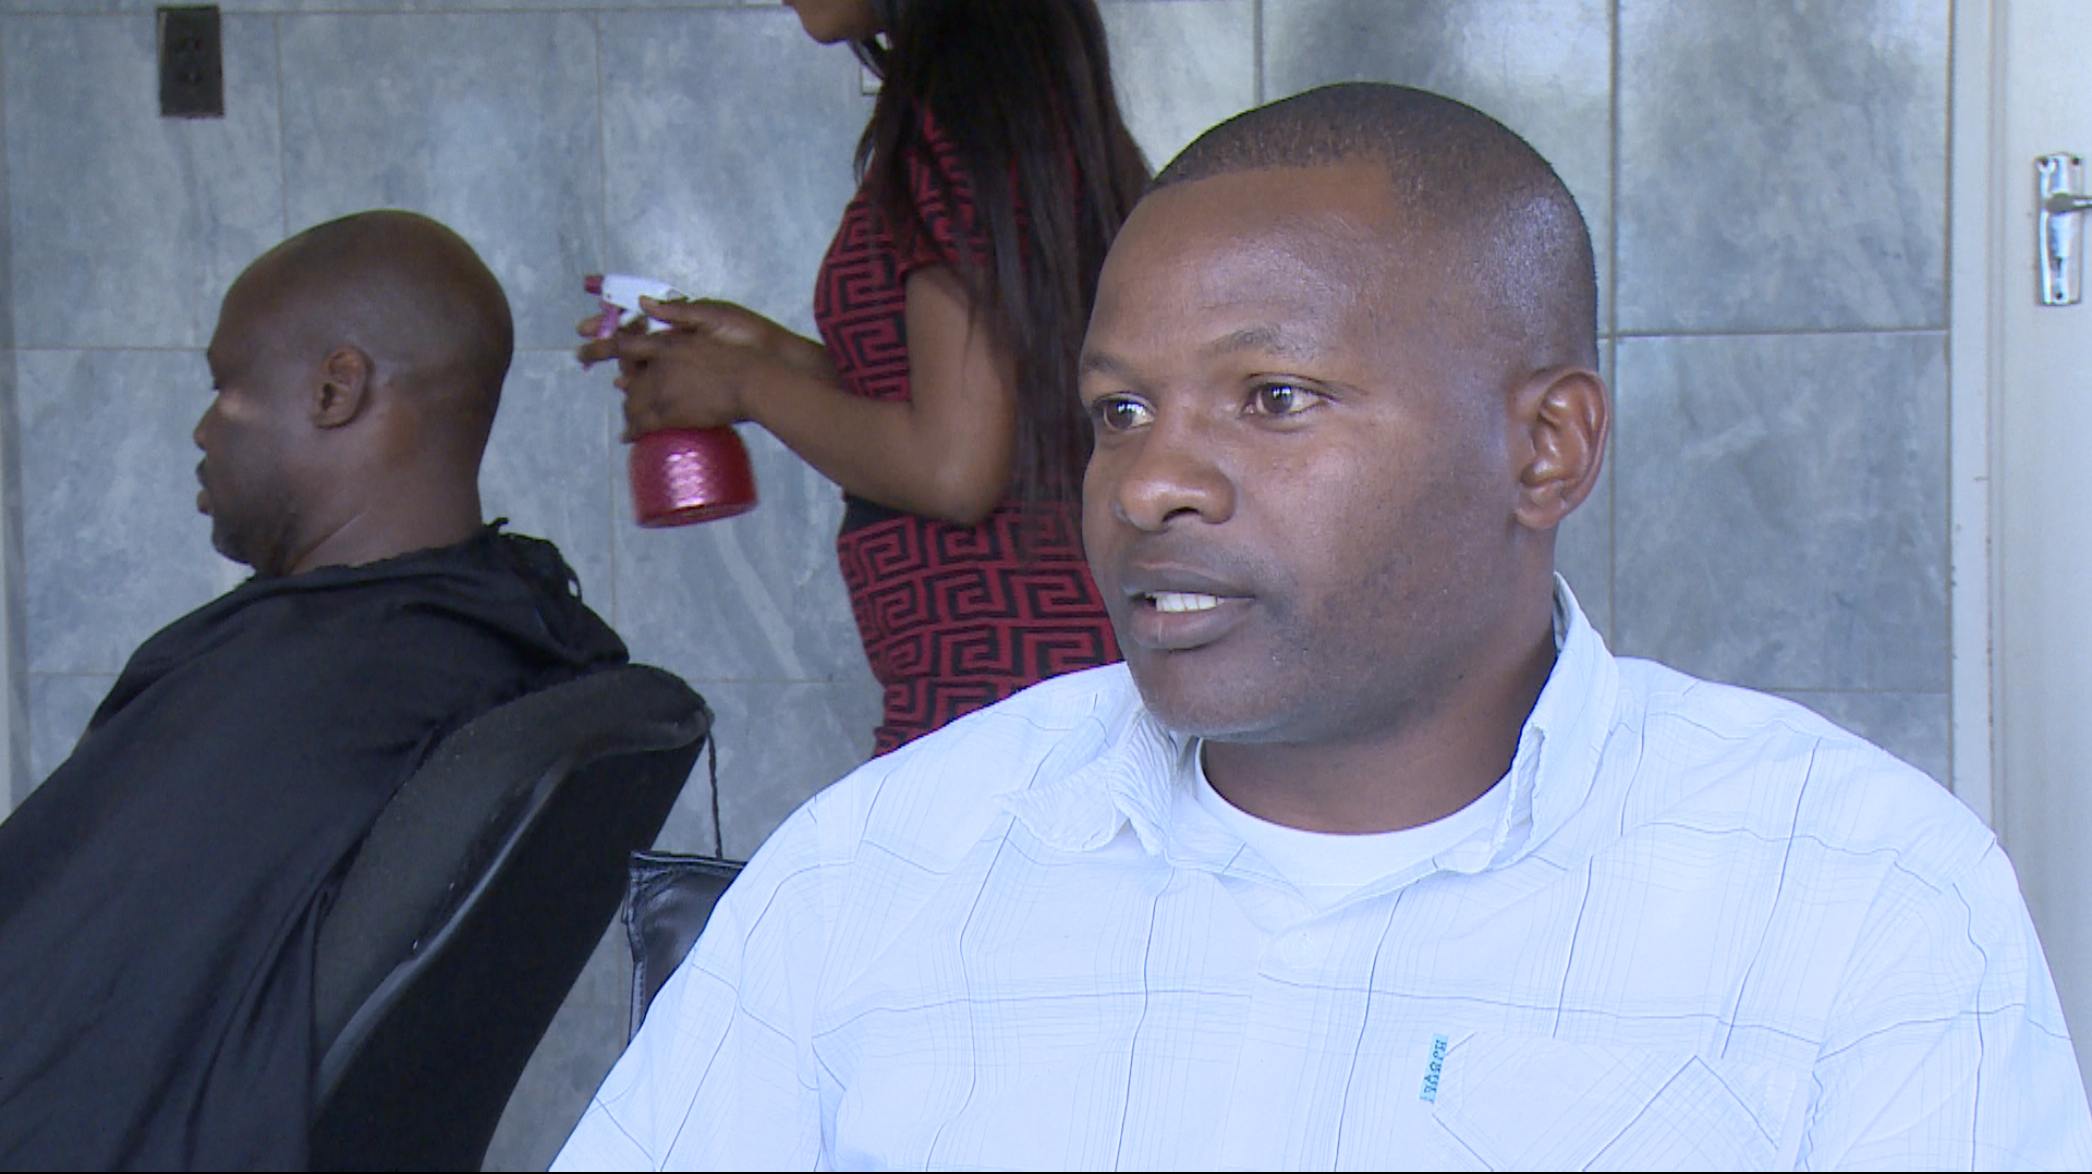 Collins Chigwagwa who runs a small barbershop in a Harare suburb, last week bought a solar power system that he says can power his shop for up to eight hours to reduce the impact of Zimbabwe's lengthy power cuts (C. Mavhunga/VOA)